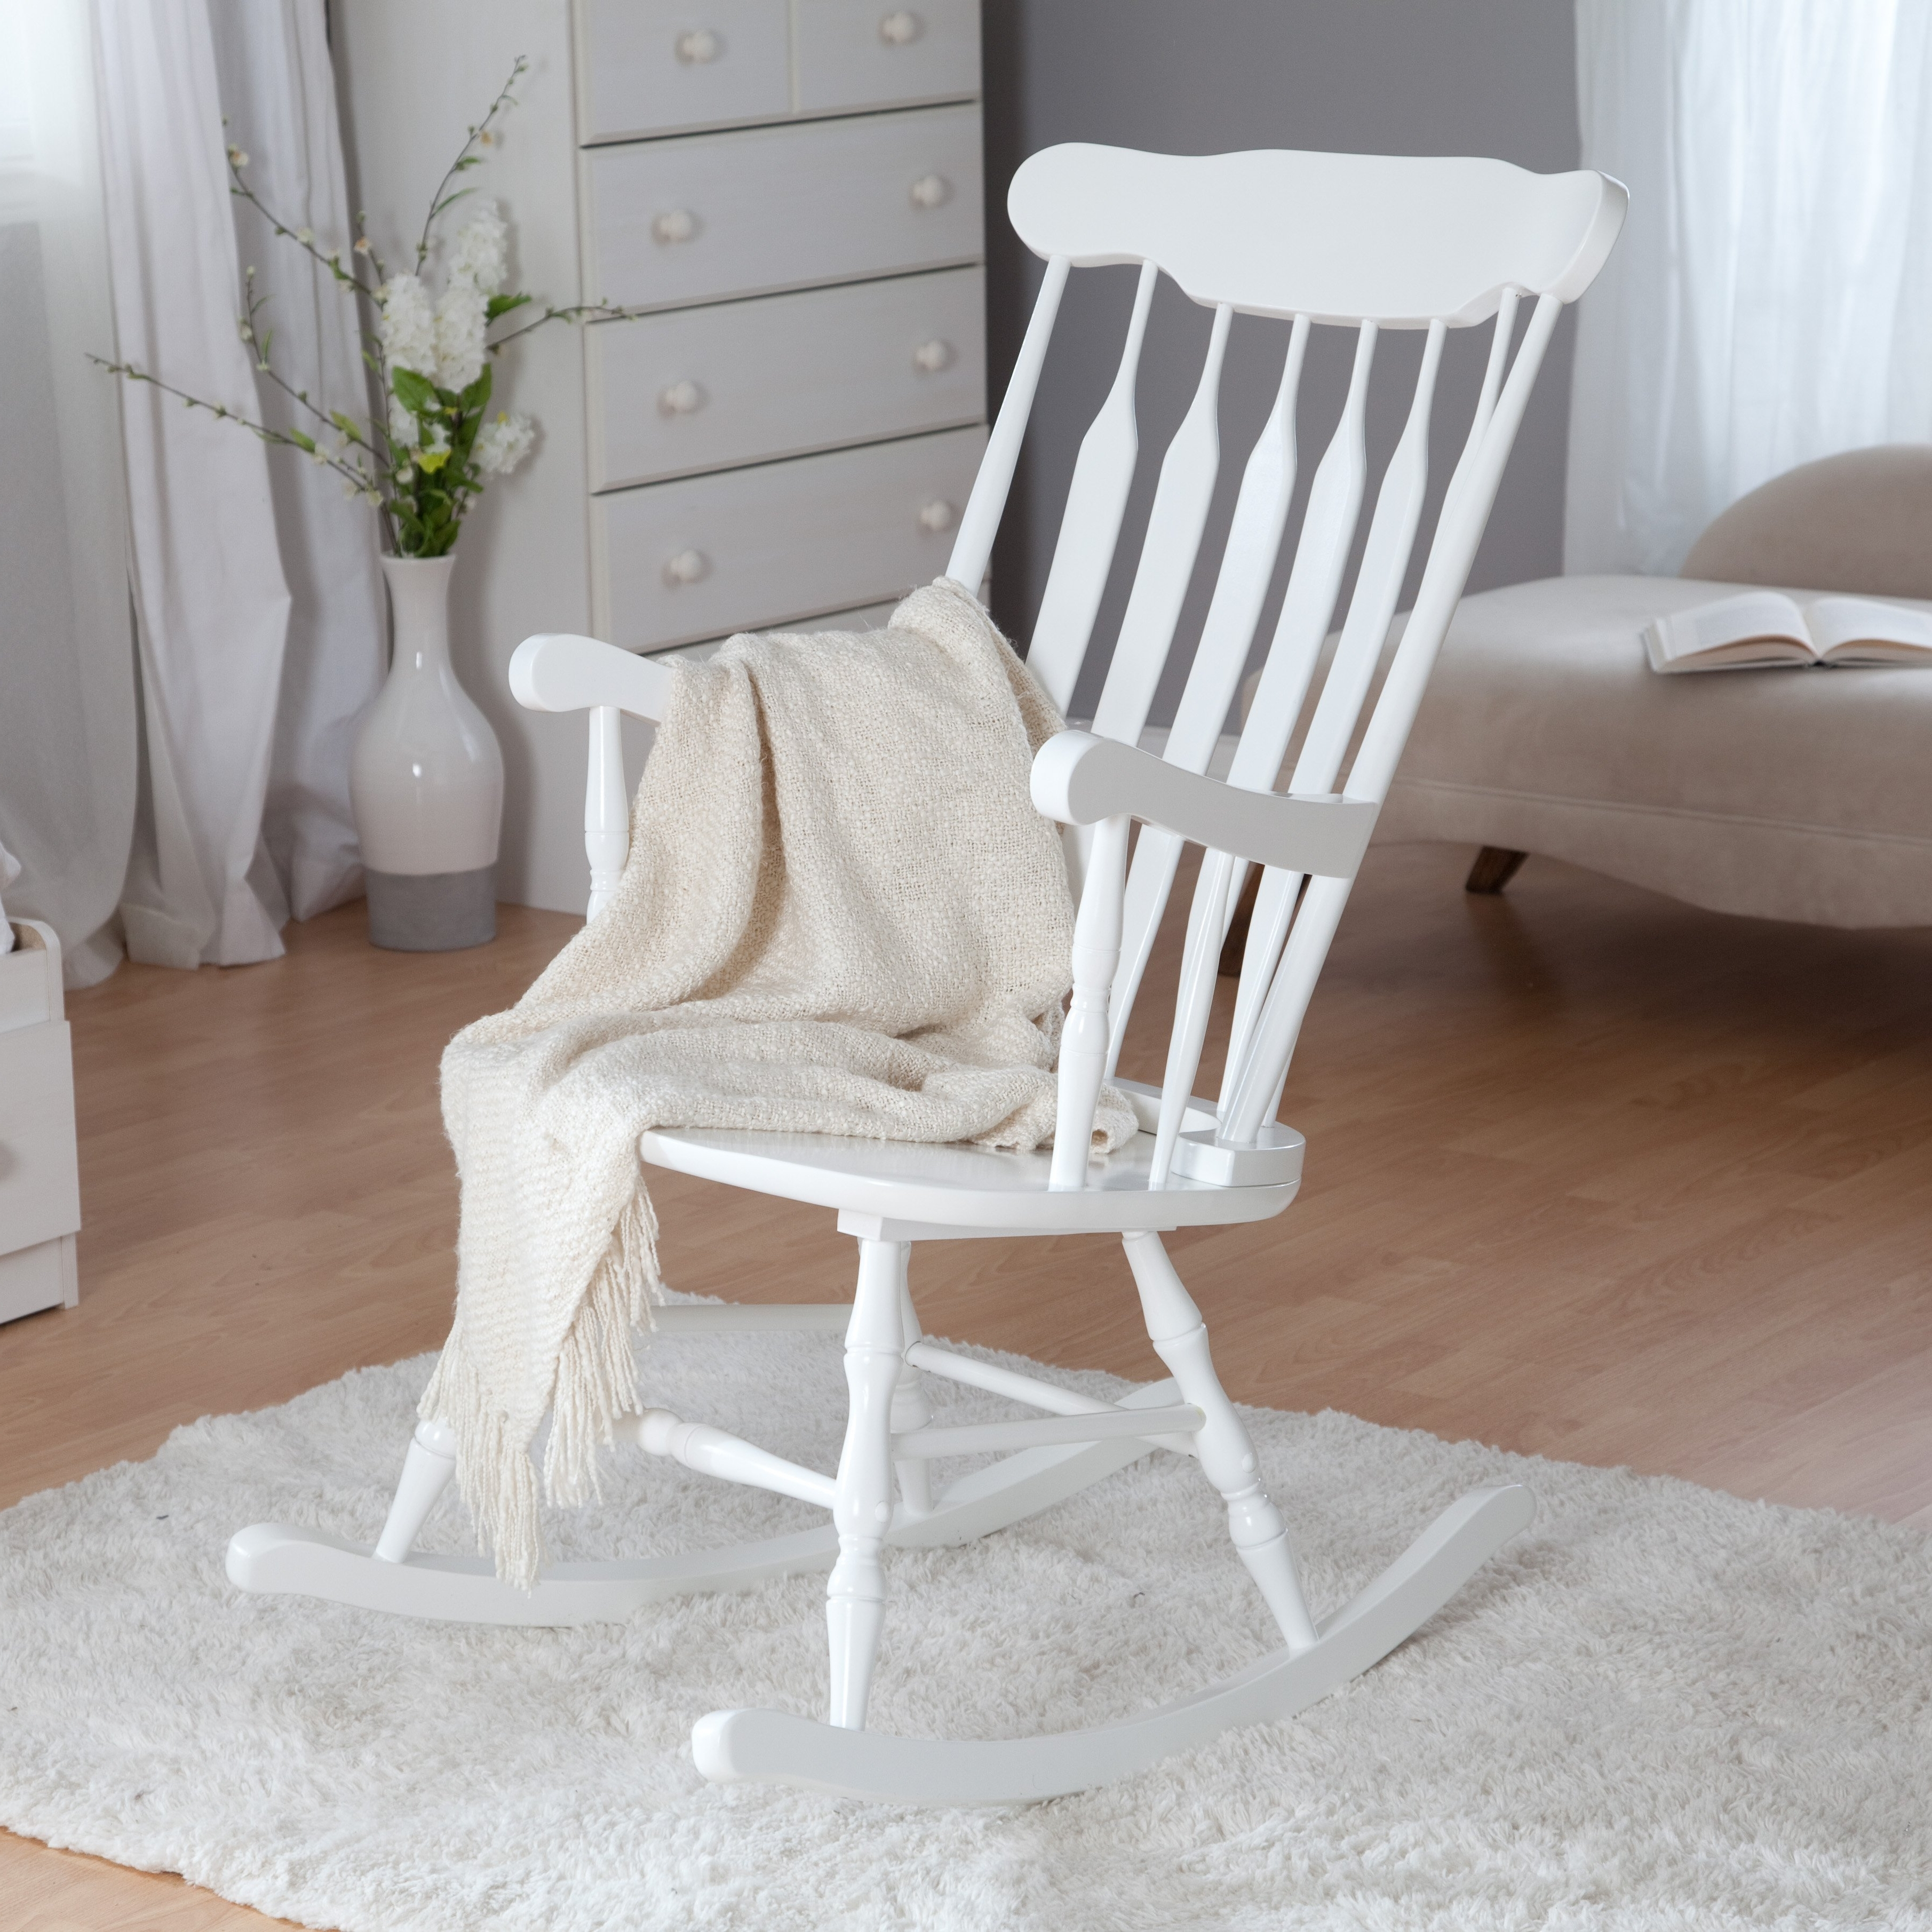 Famous Perfect Nursery Rocking Chair Cushions With Resolution Lazy Boy Type Inside White Wicker Rocking Chair For Nursery (View 11 of 20)